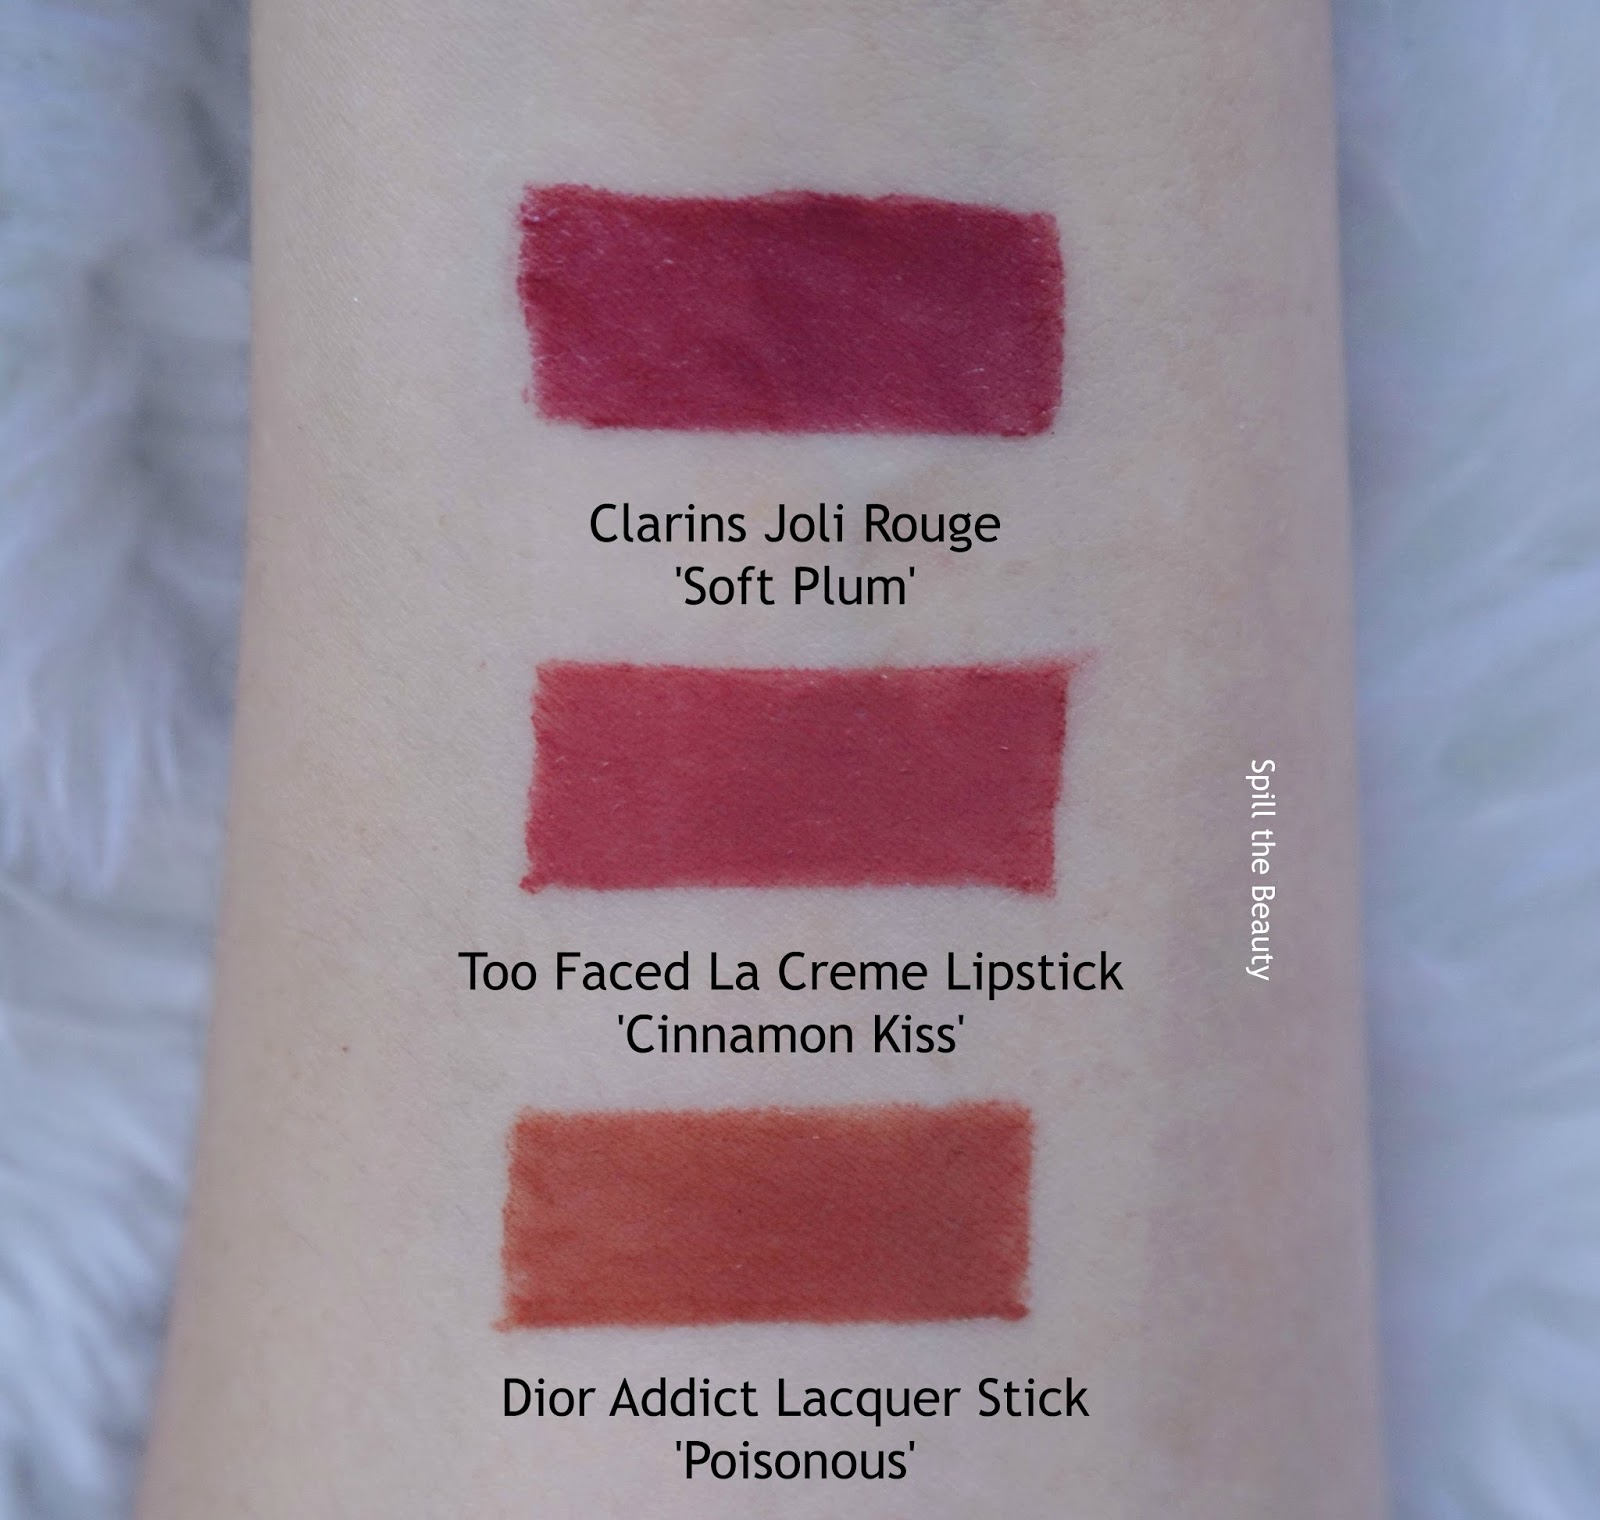 too faced la creme lipstick cinnamon kiss swatch comparison dupe clarins soft plum dior lacquer stick poisonous